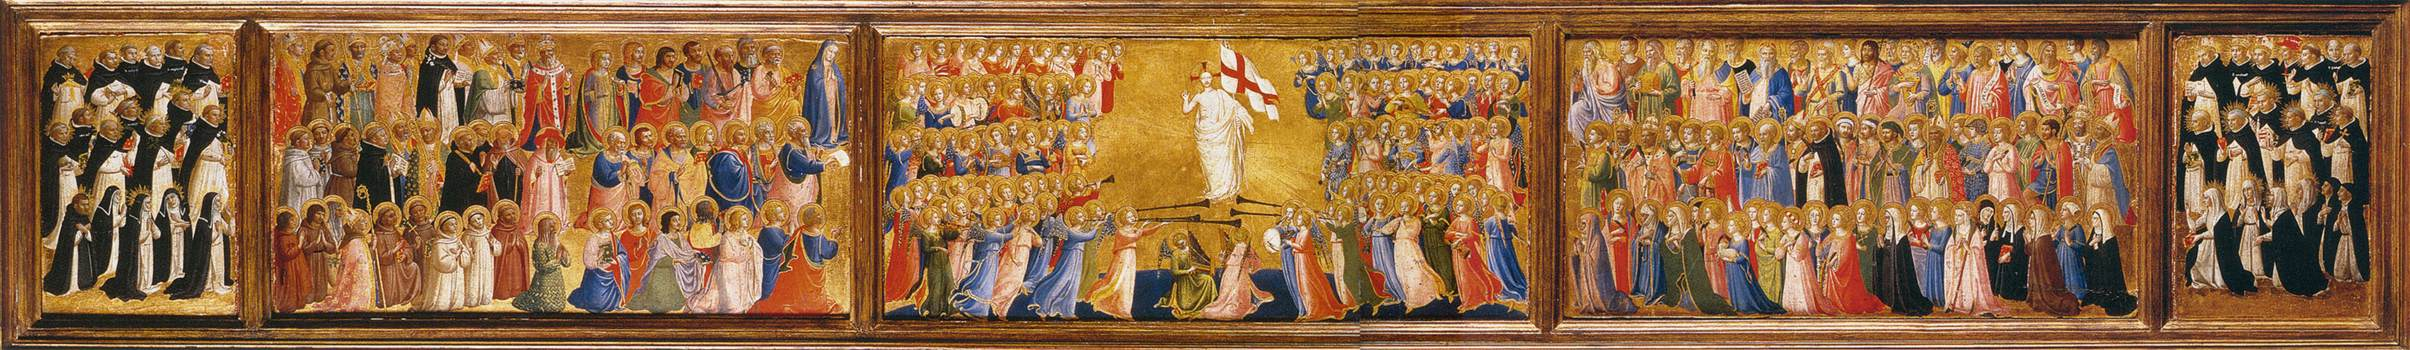 Le retable de San Domenico de Fra Angelico